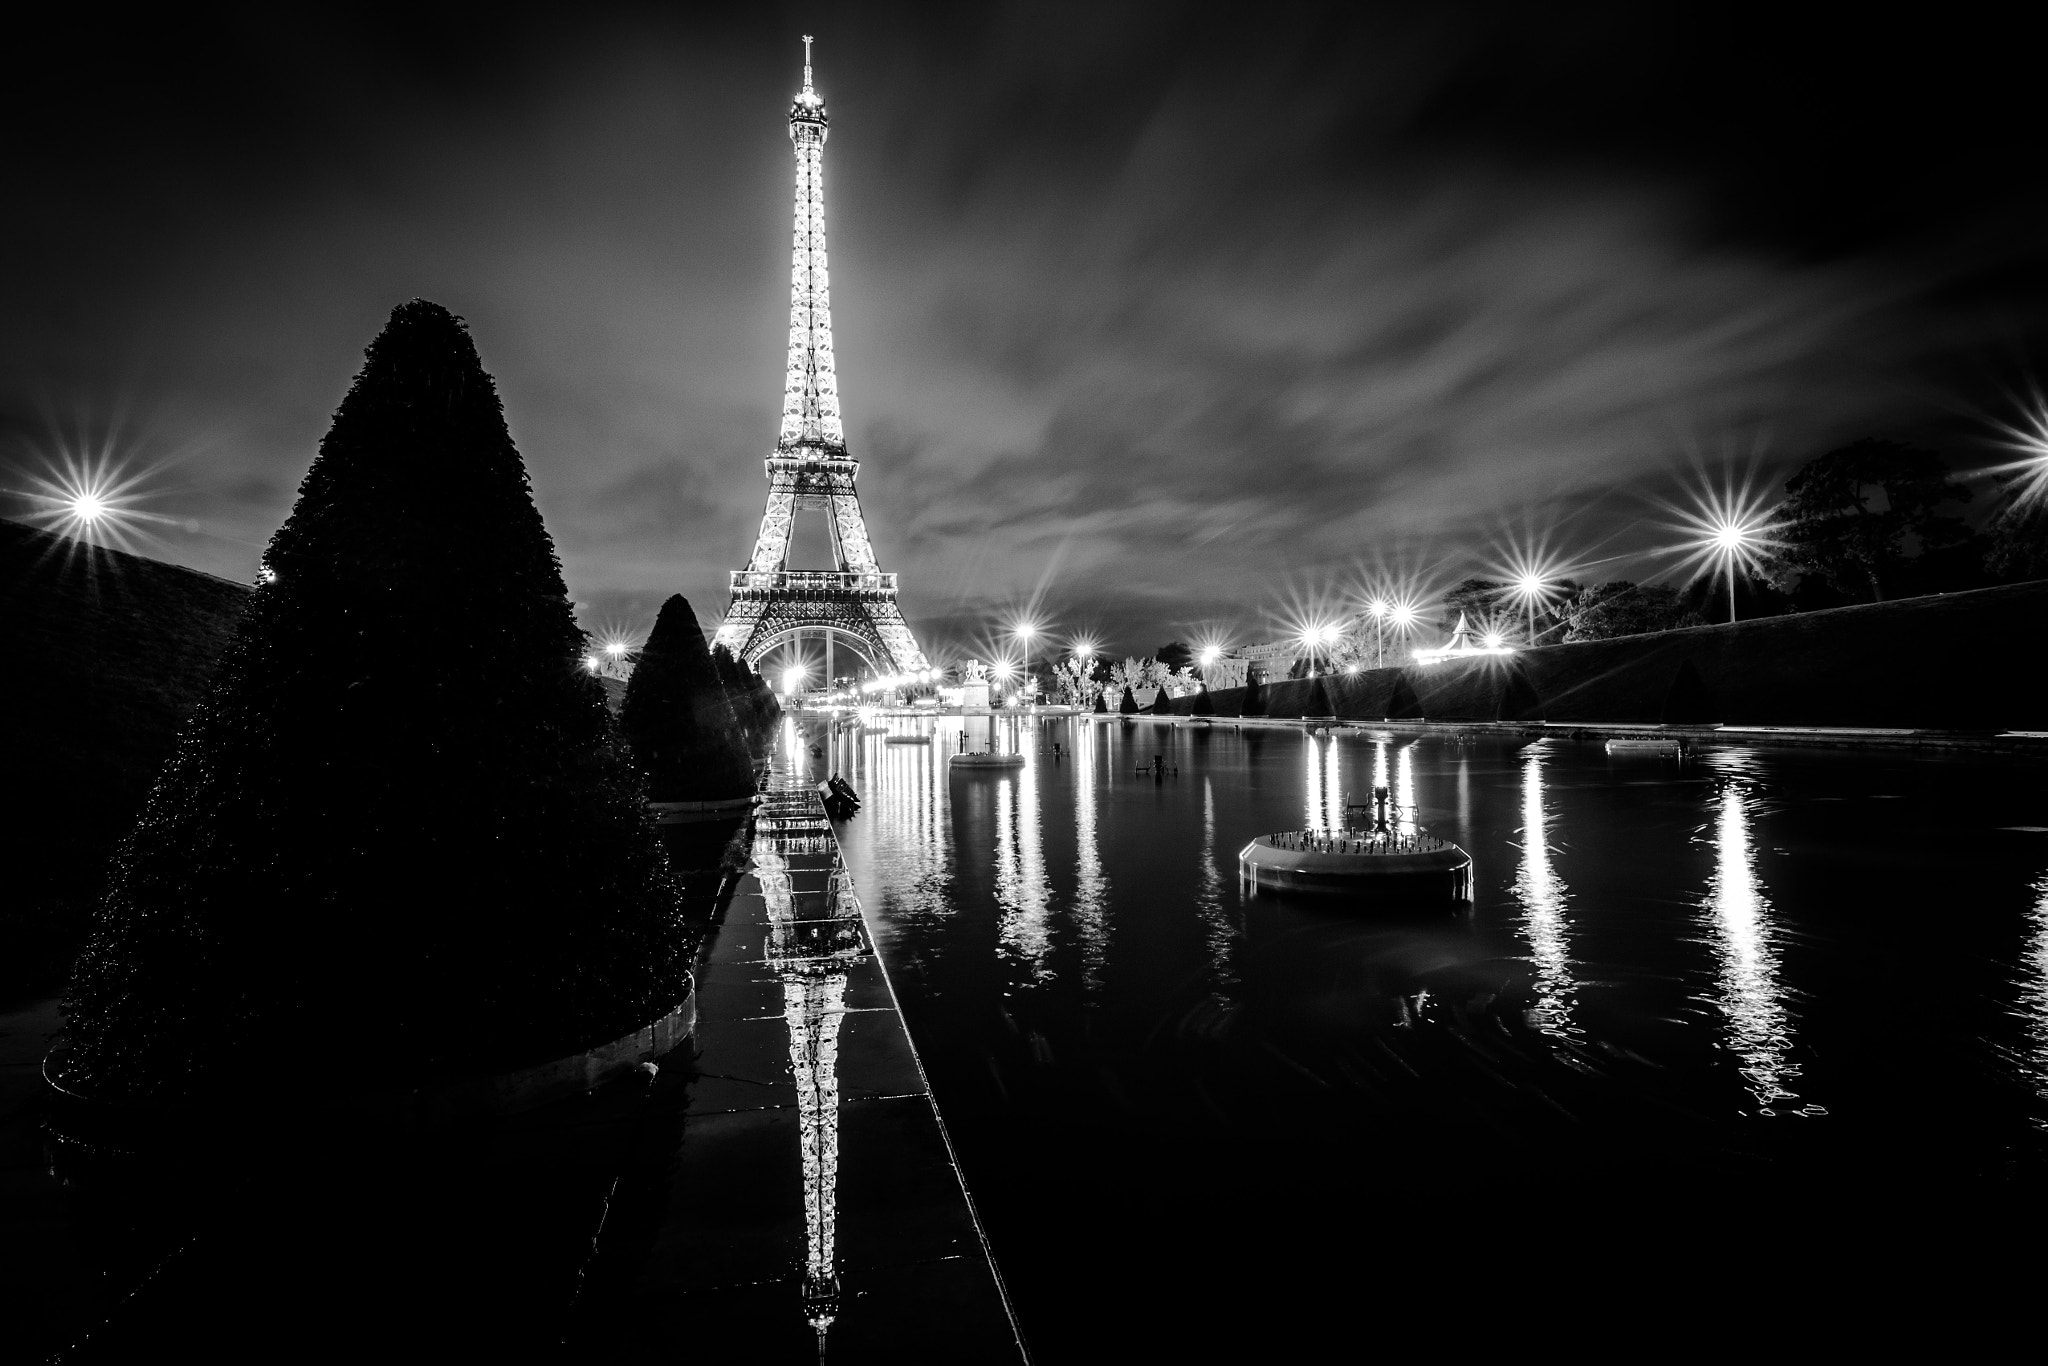 Photograph Eiffel Tower's reflection by vincent viargues on 500px